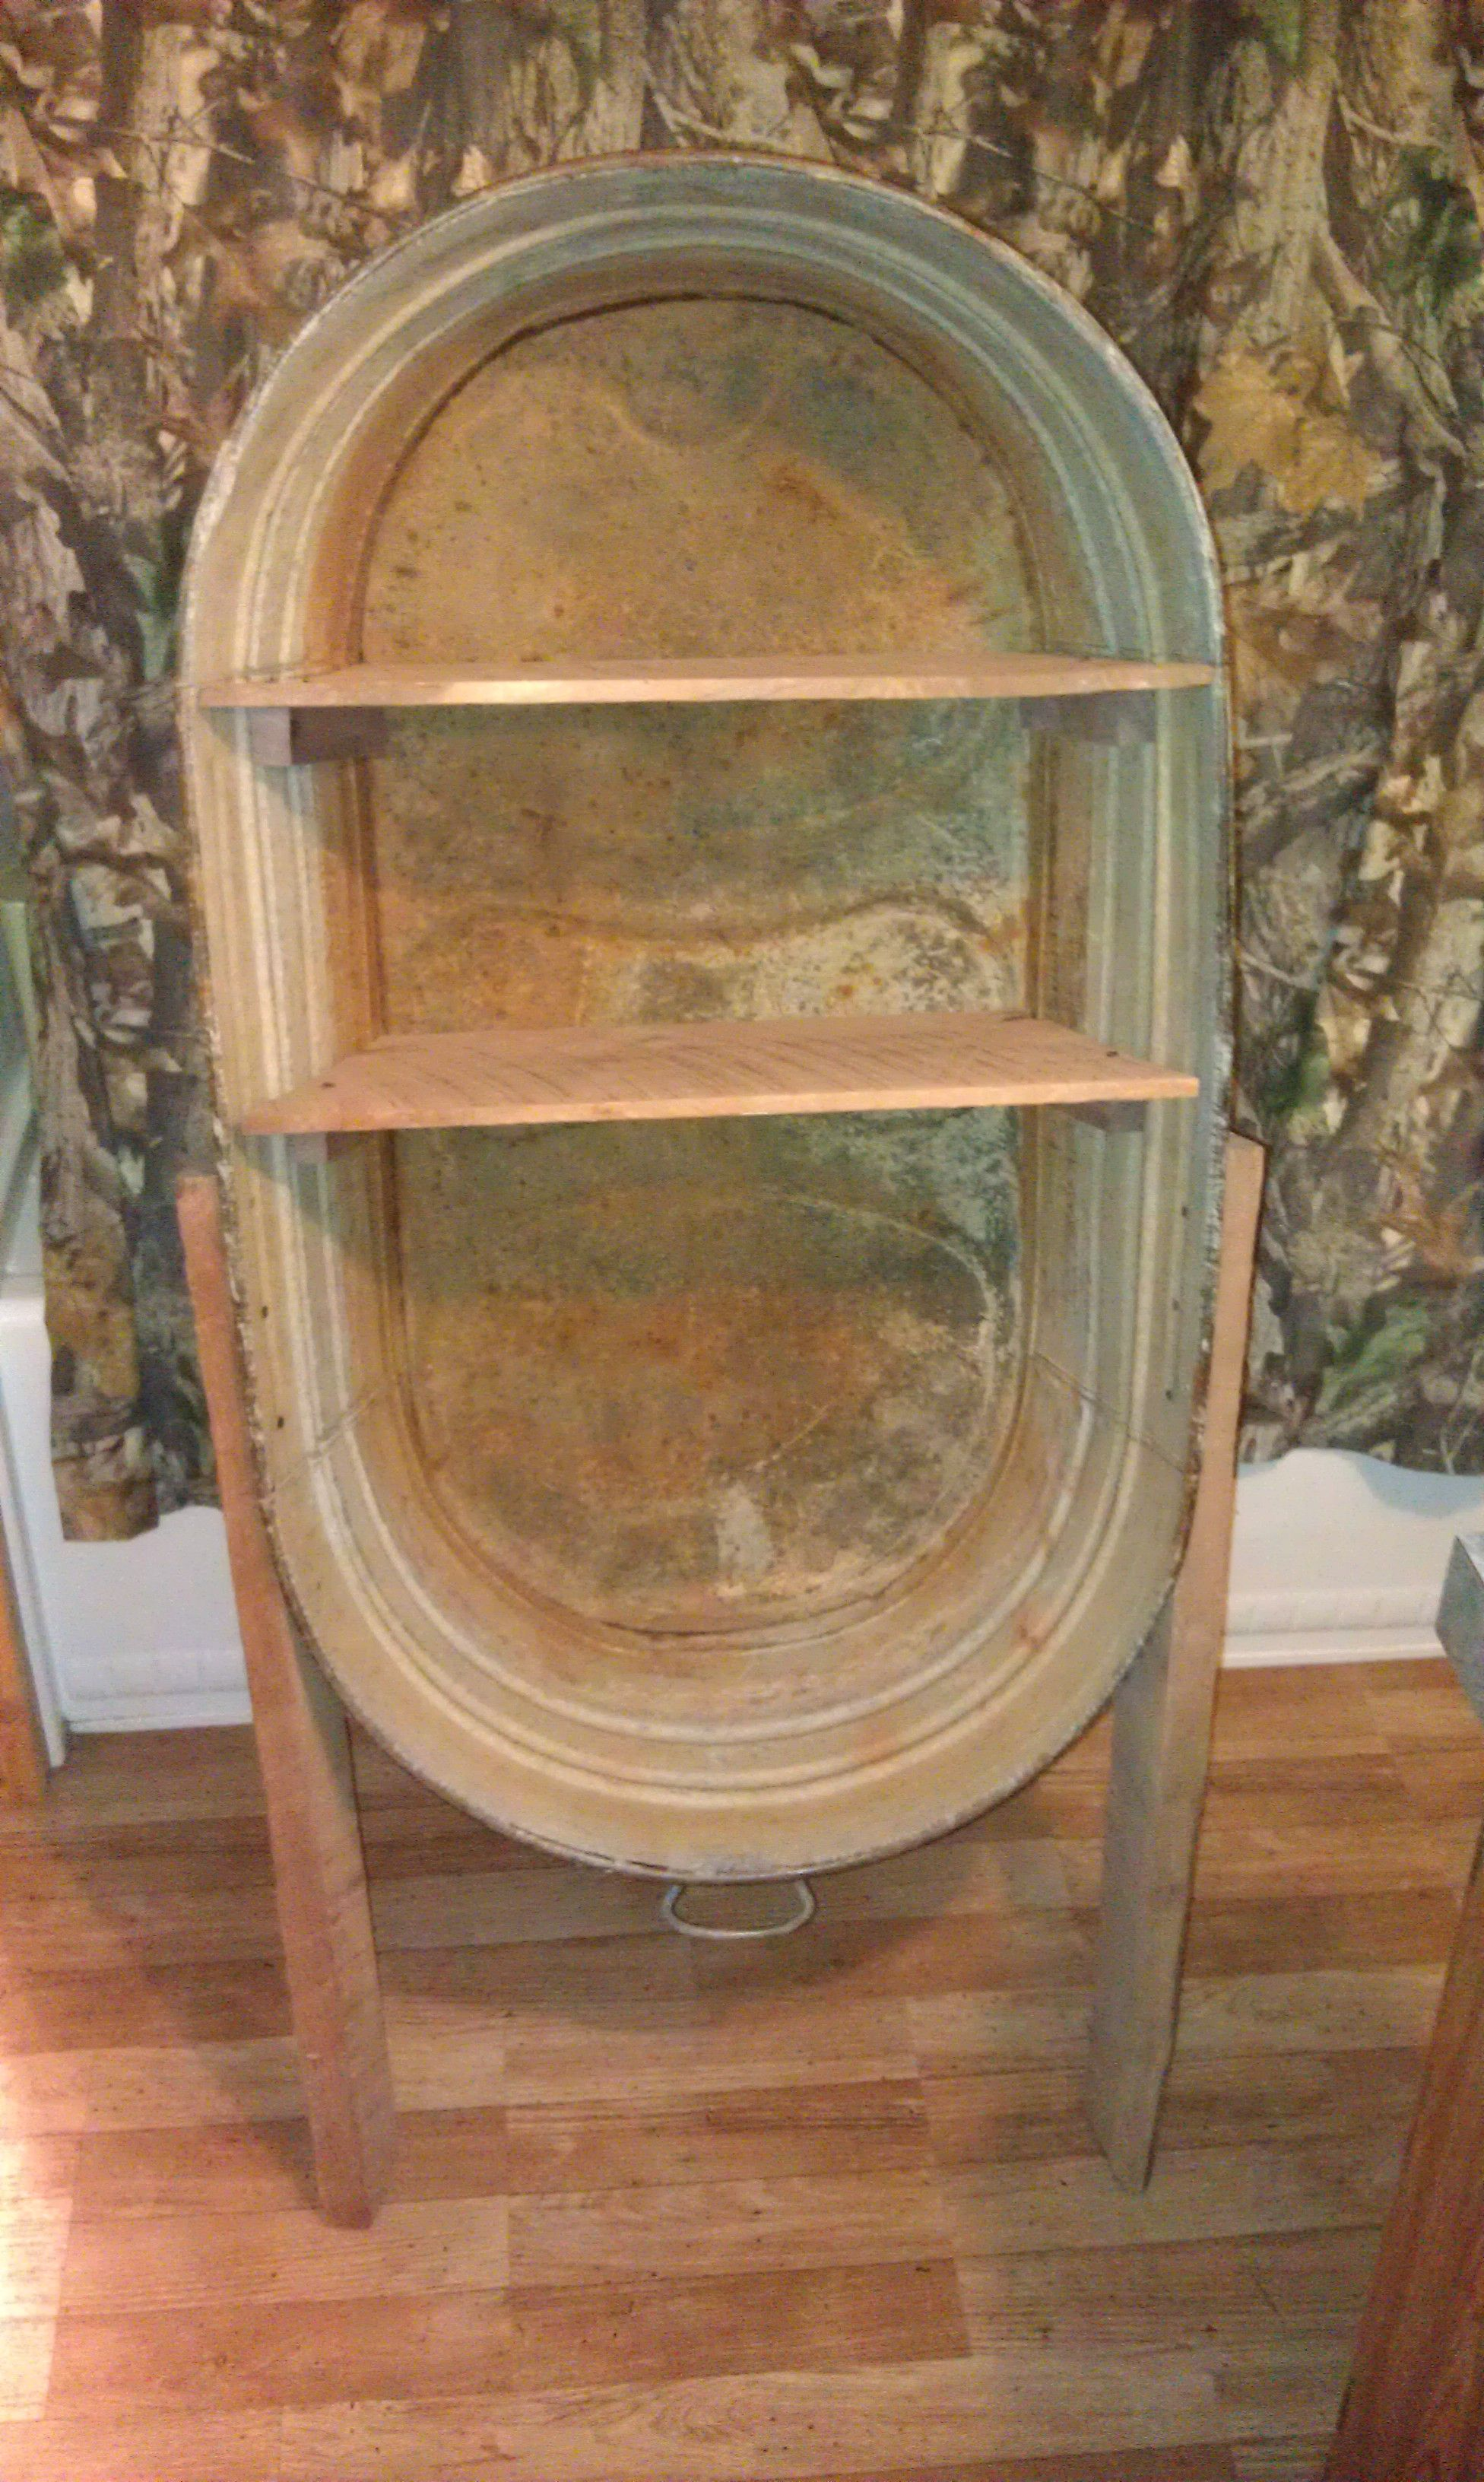 Taking A Old Oval Wash Tub And Turning Into A New Antique